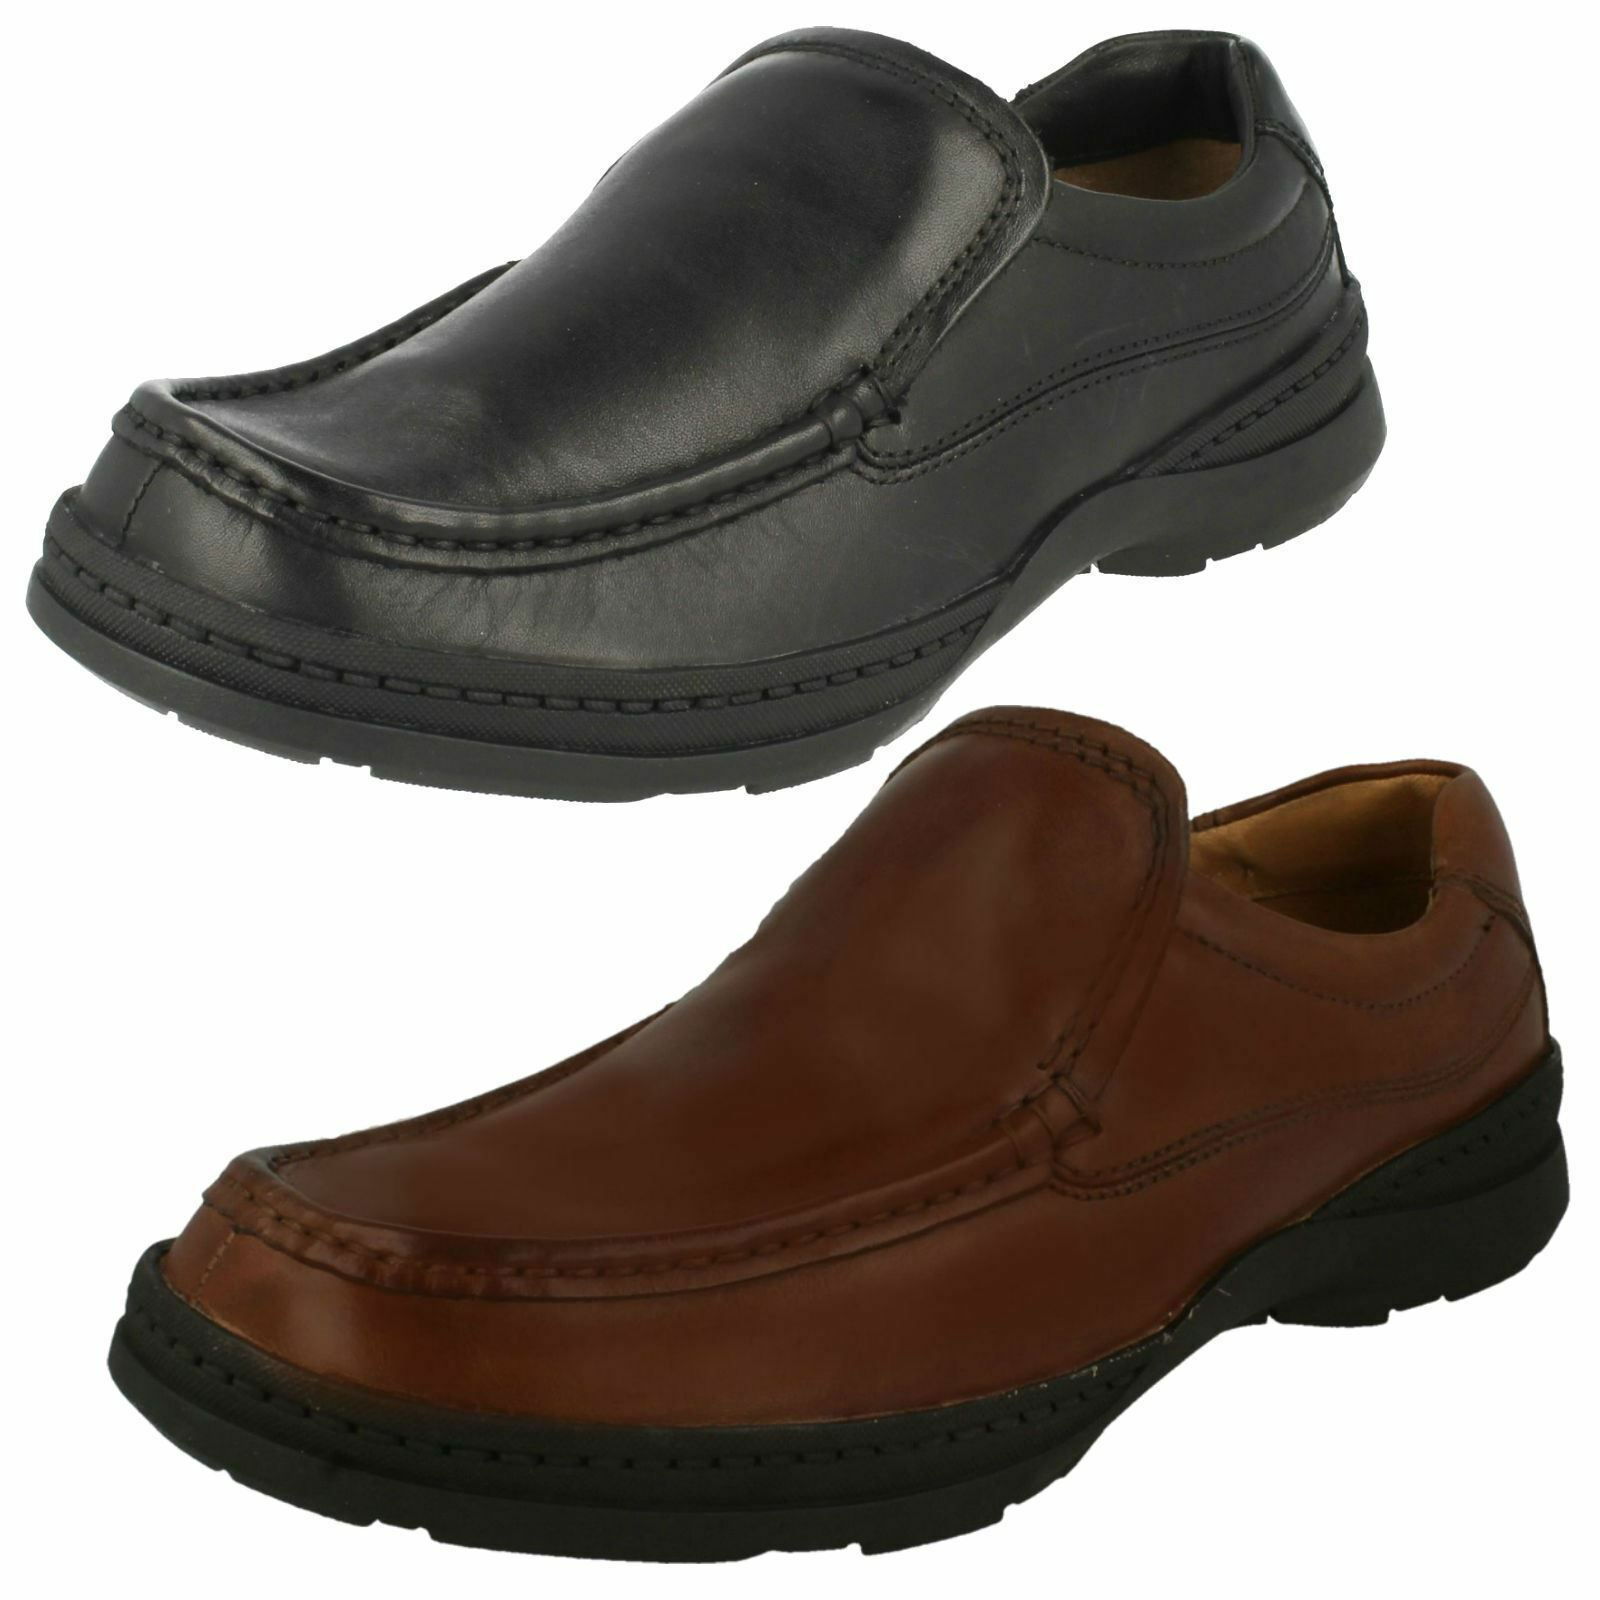 MENS CLARKS  LEATHER SLIP ON SHOES-LINE FREE